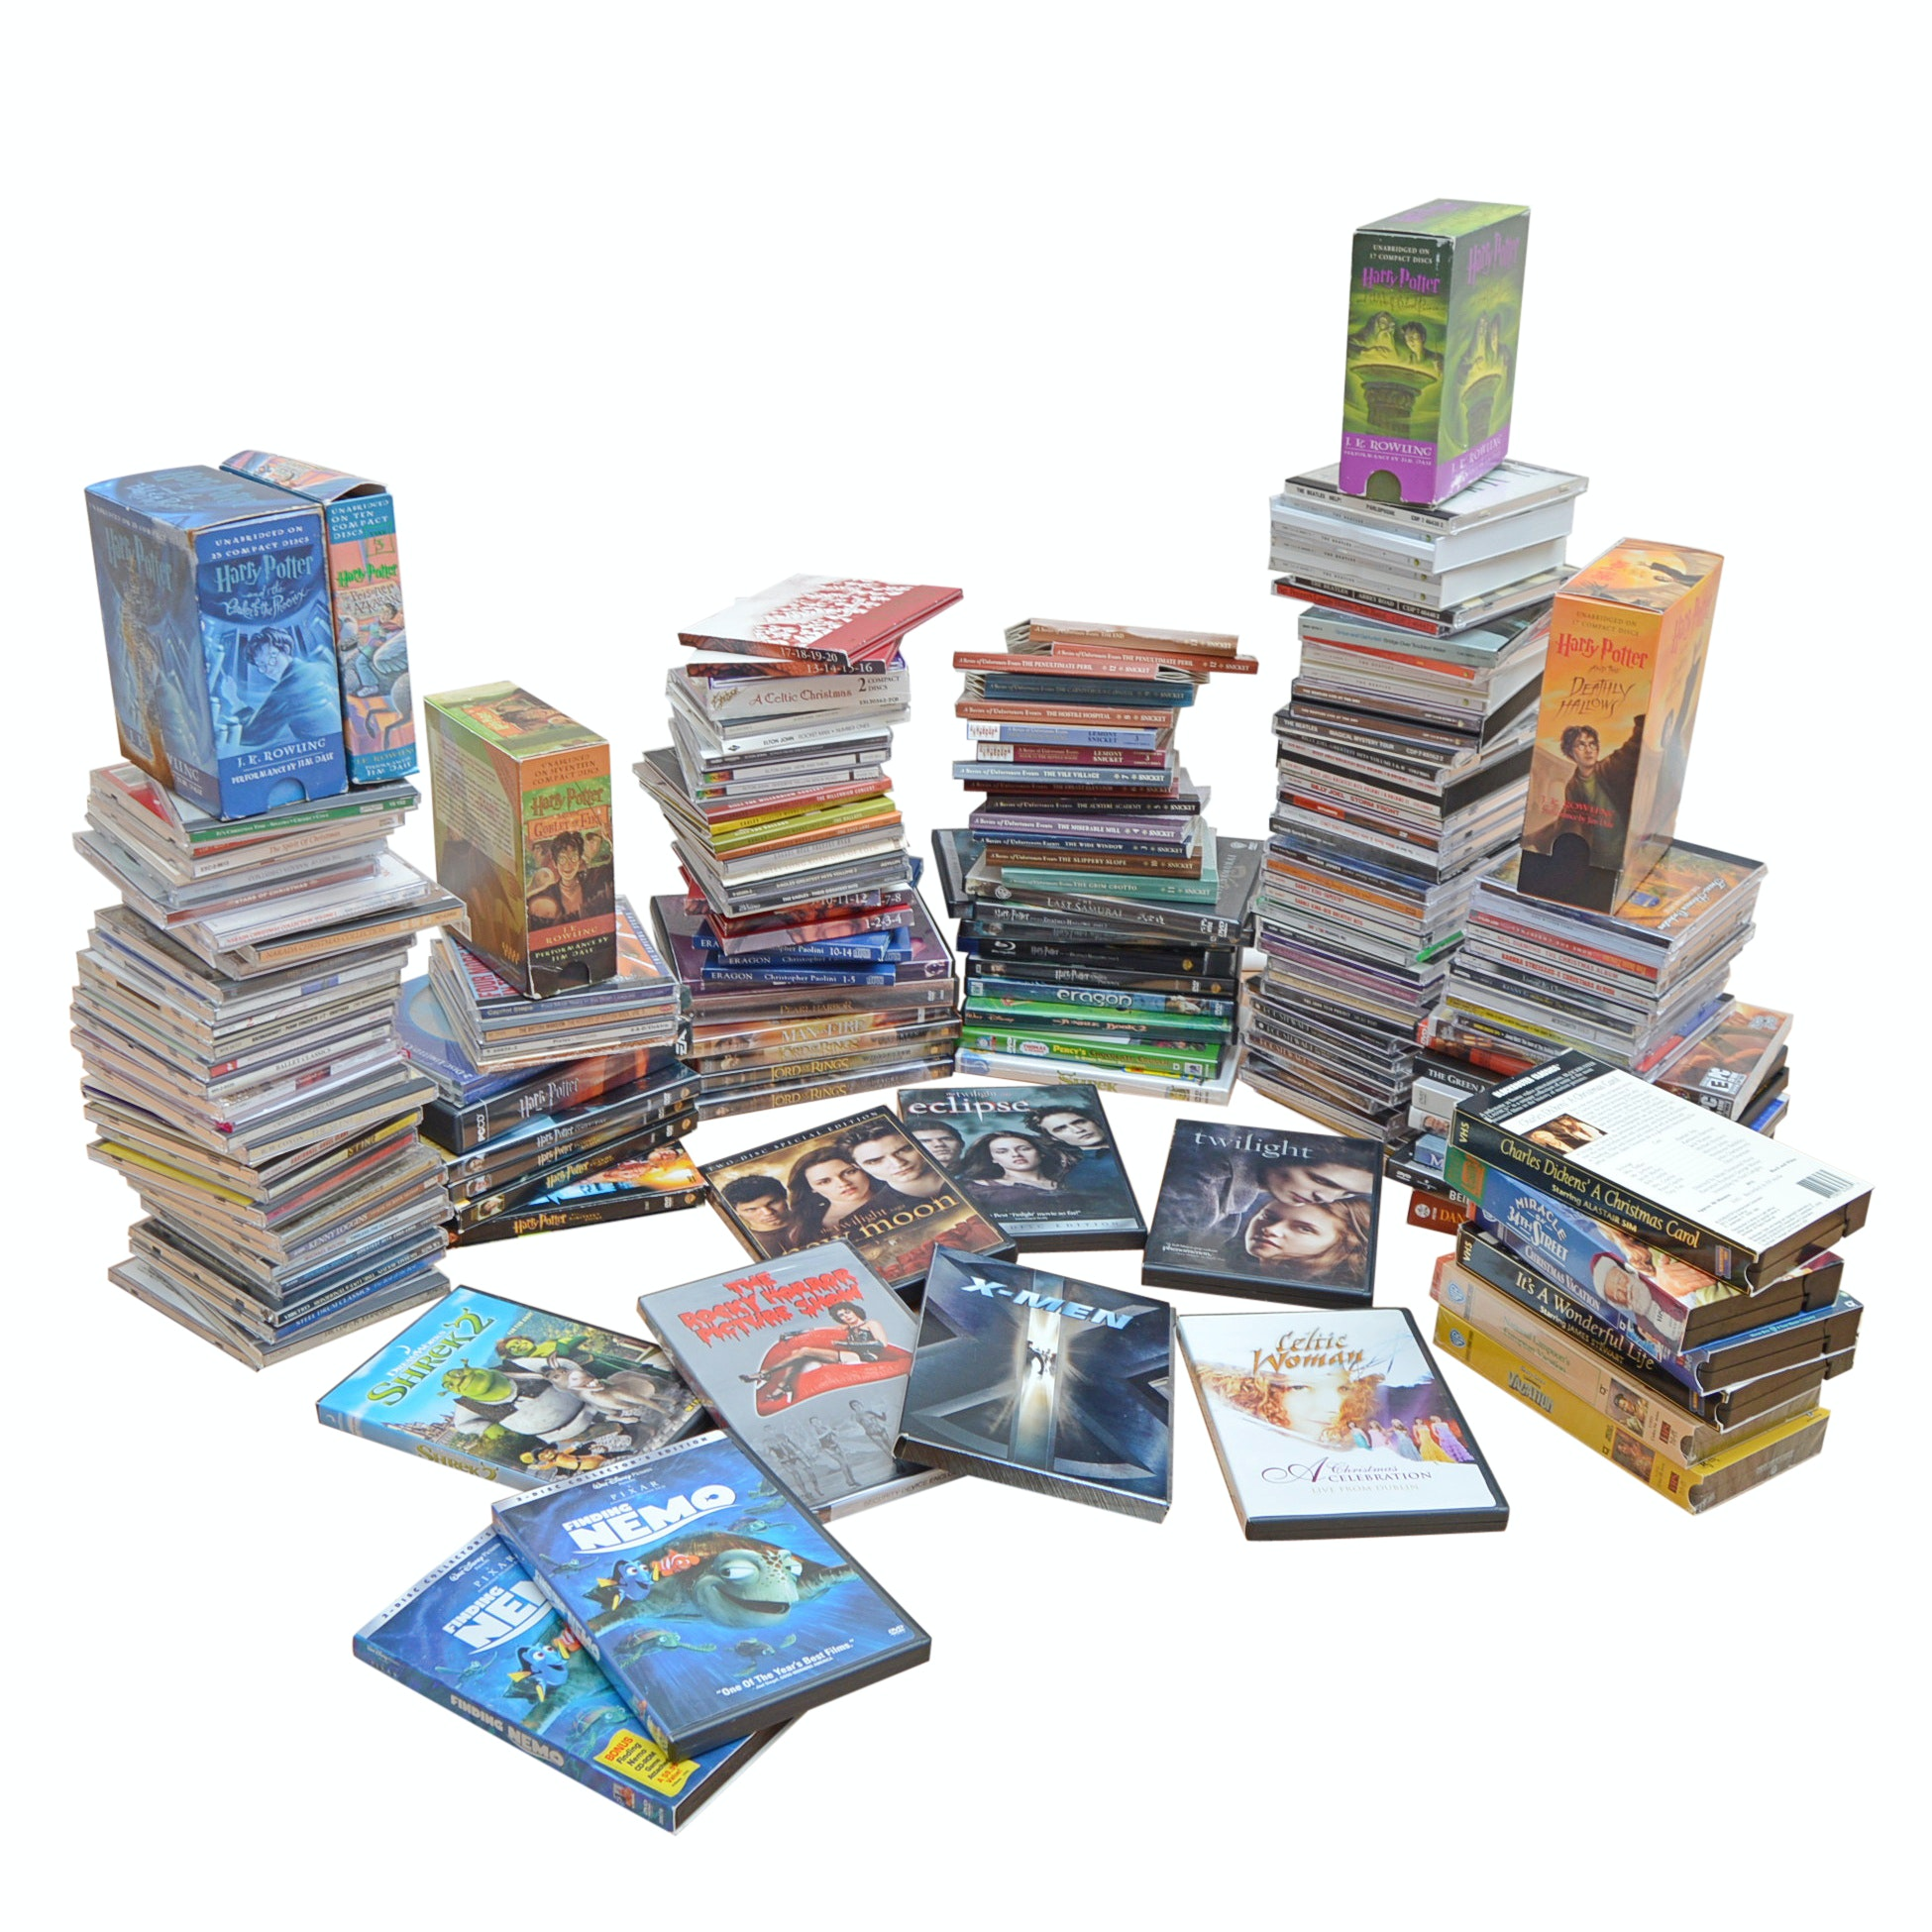 Large Collection of DVDs, CDs and VHS Films